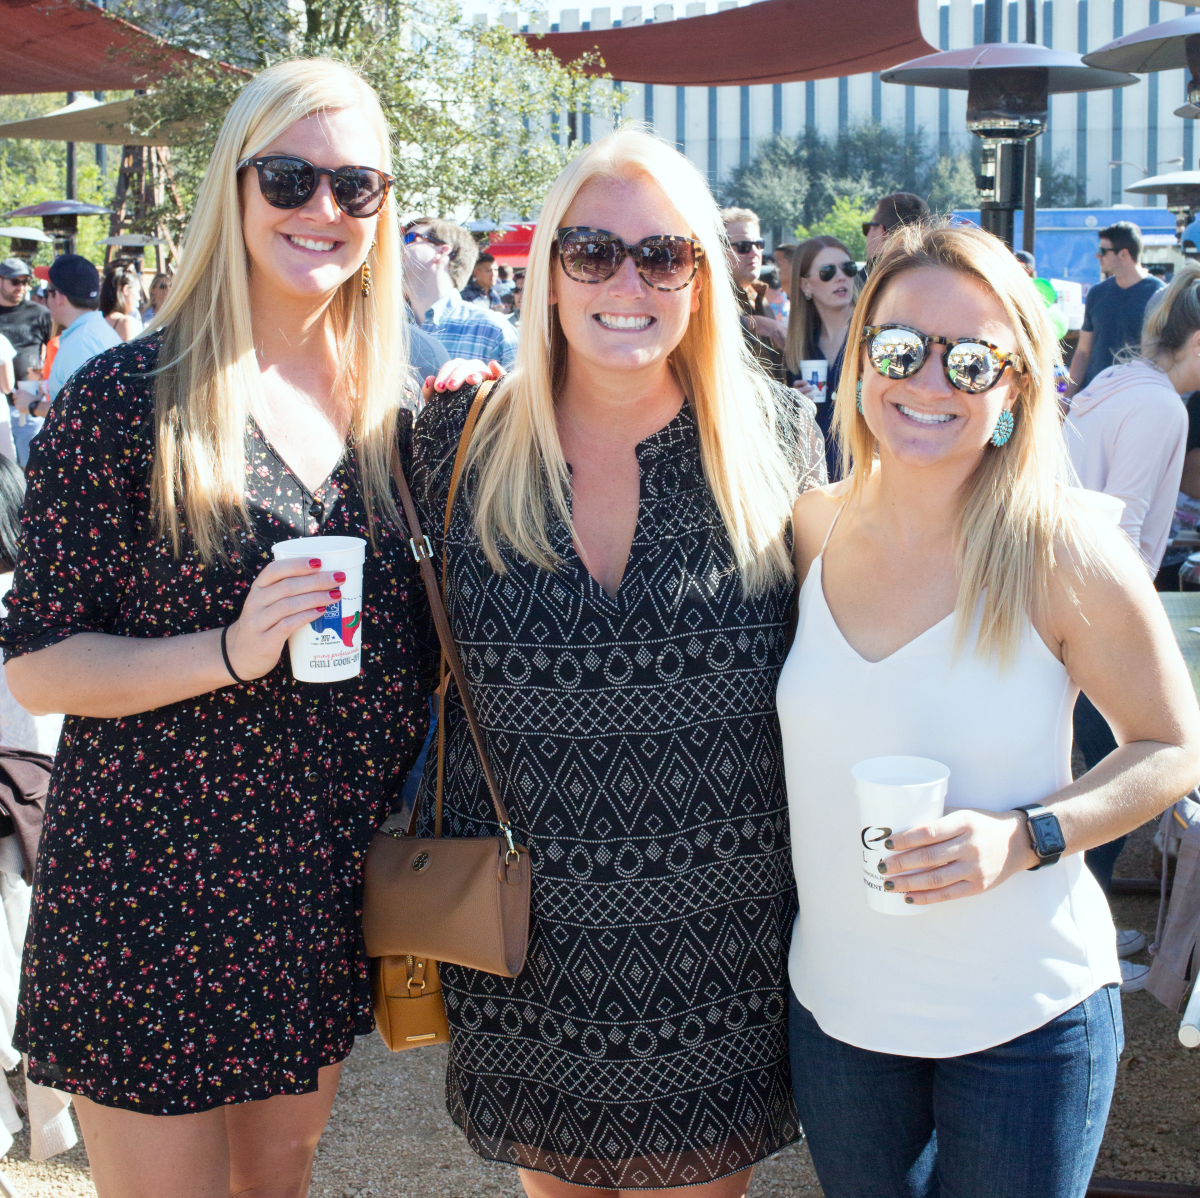 Houston, Casa de Esperanza 7th Annual Chili Cook-off, March 2017, Megan Favret, Molly Favret, Larianna Dunn